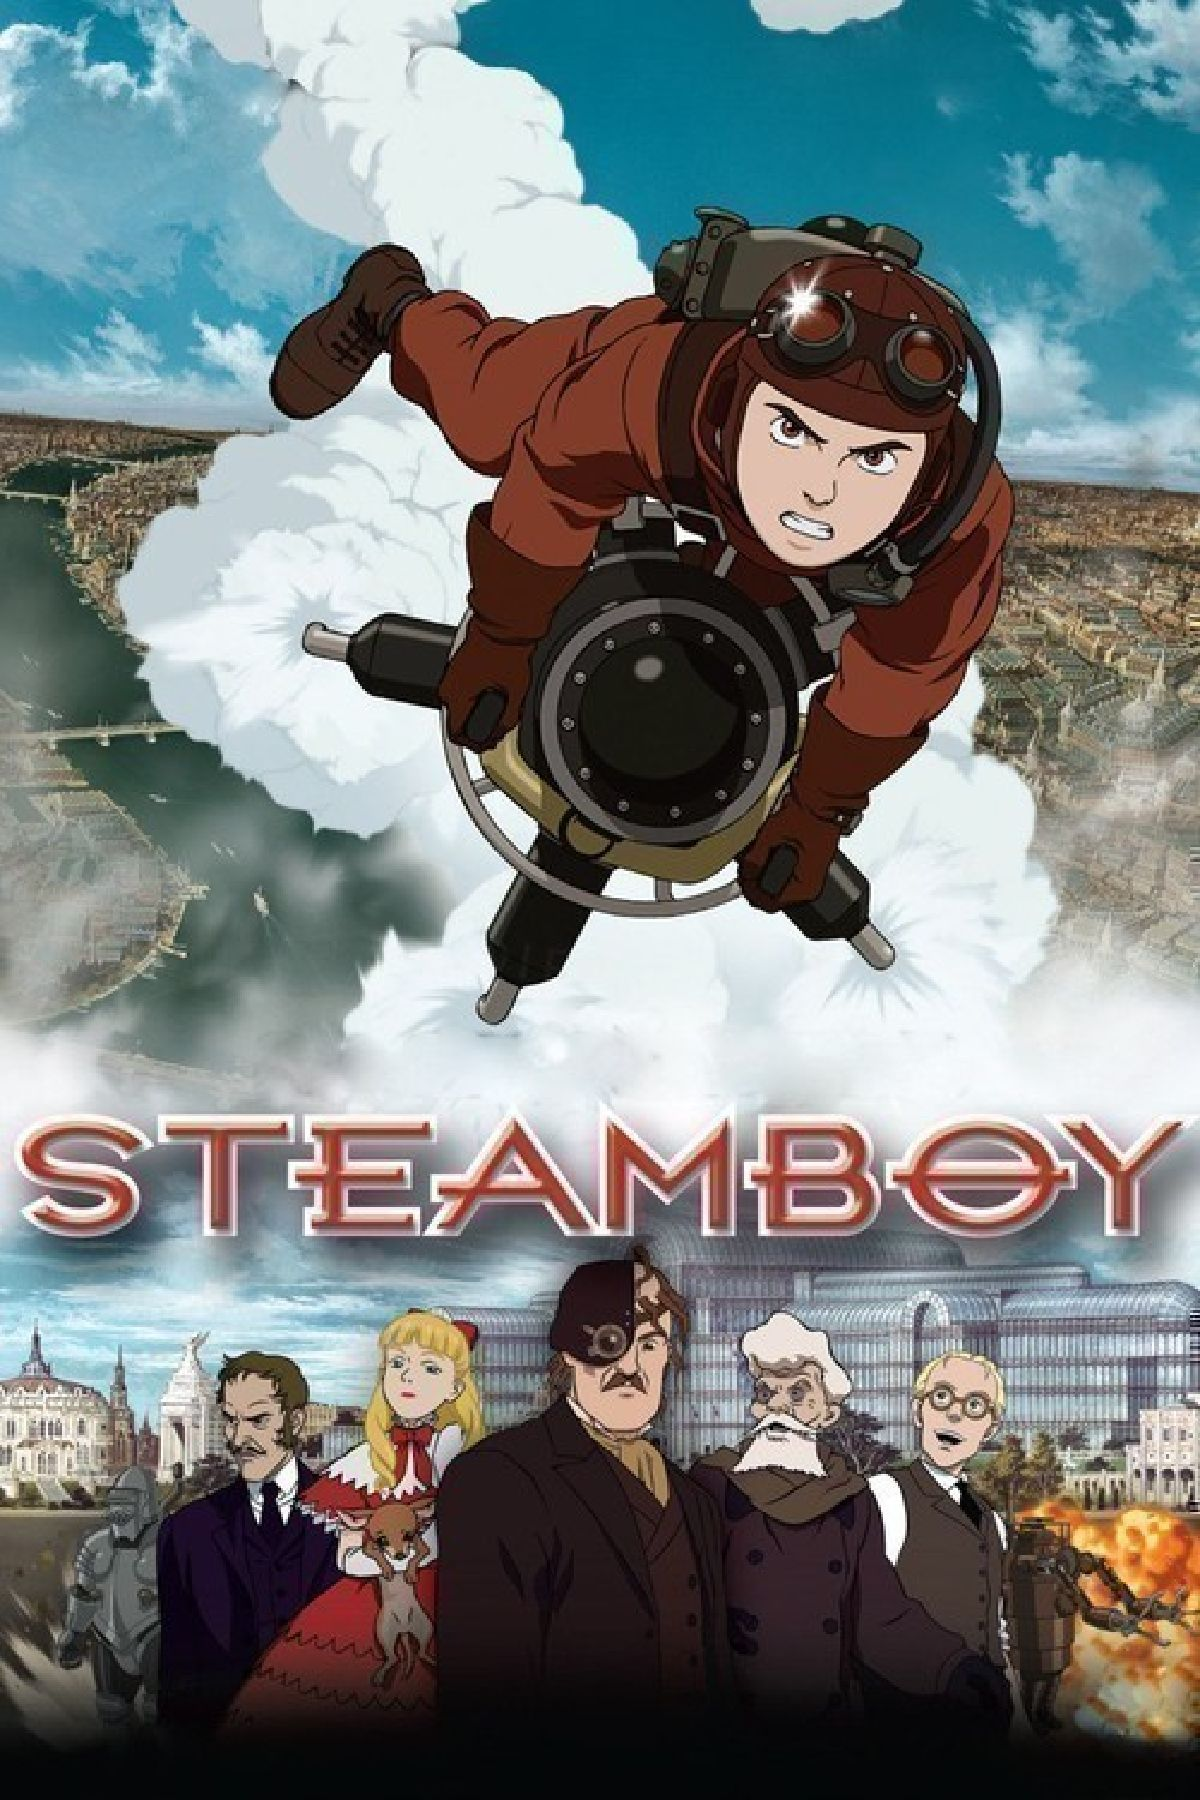 'Steamboy' movie poster